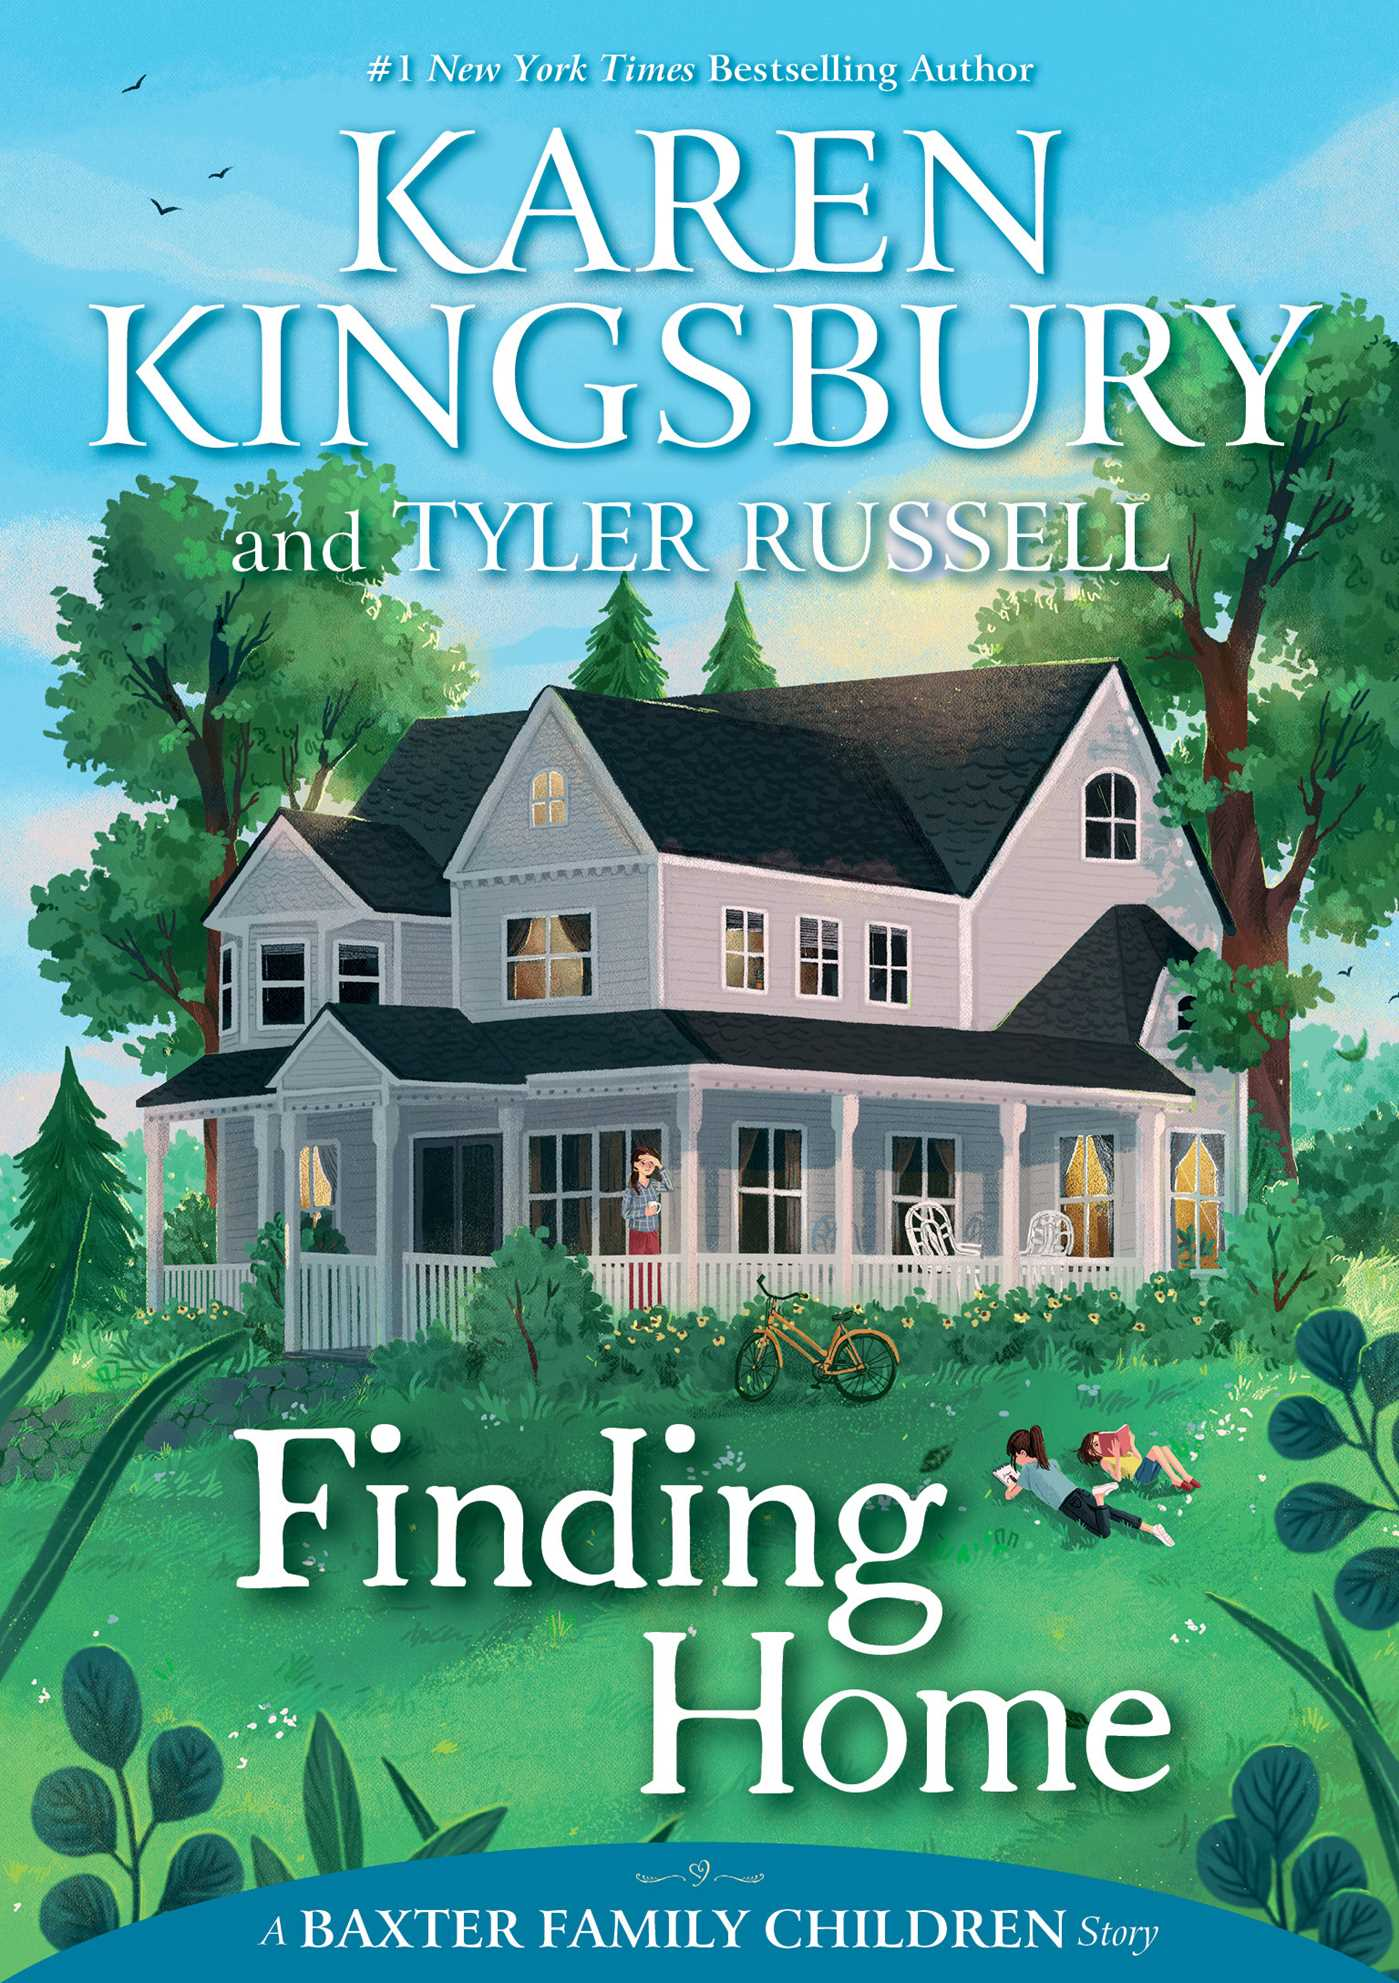 Finding Home (Baxter Family Children, #2)